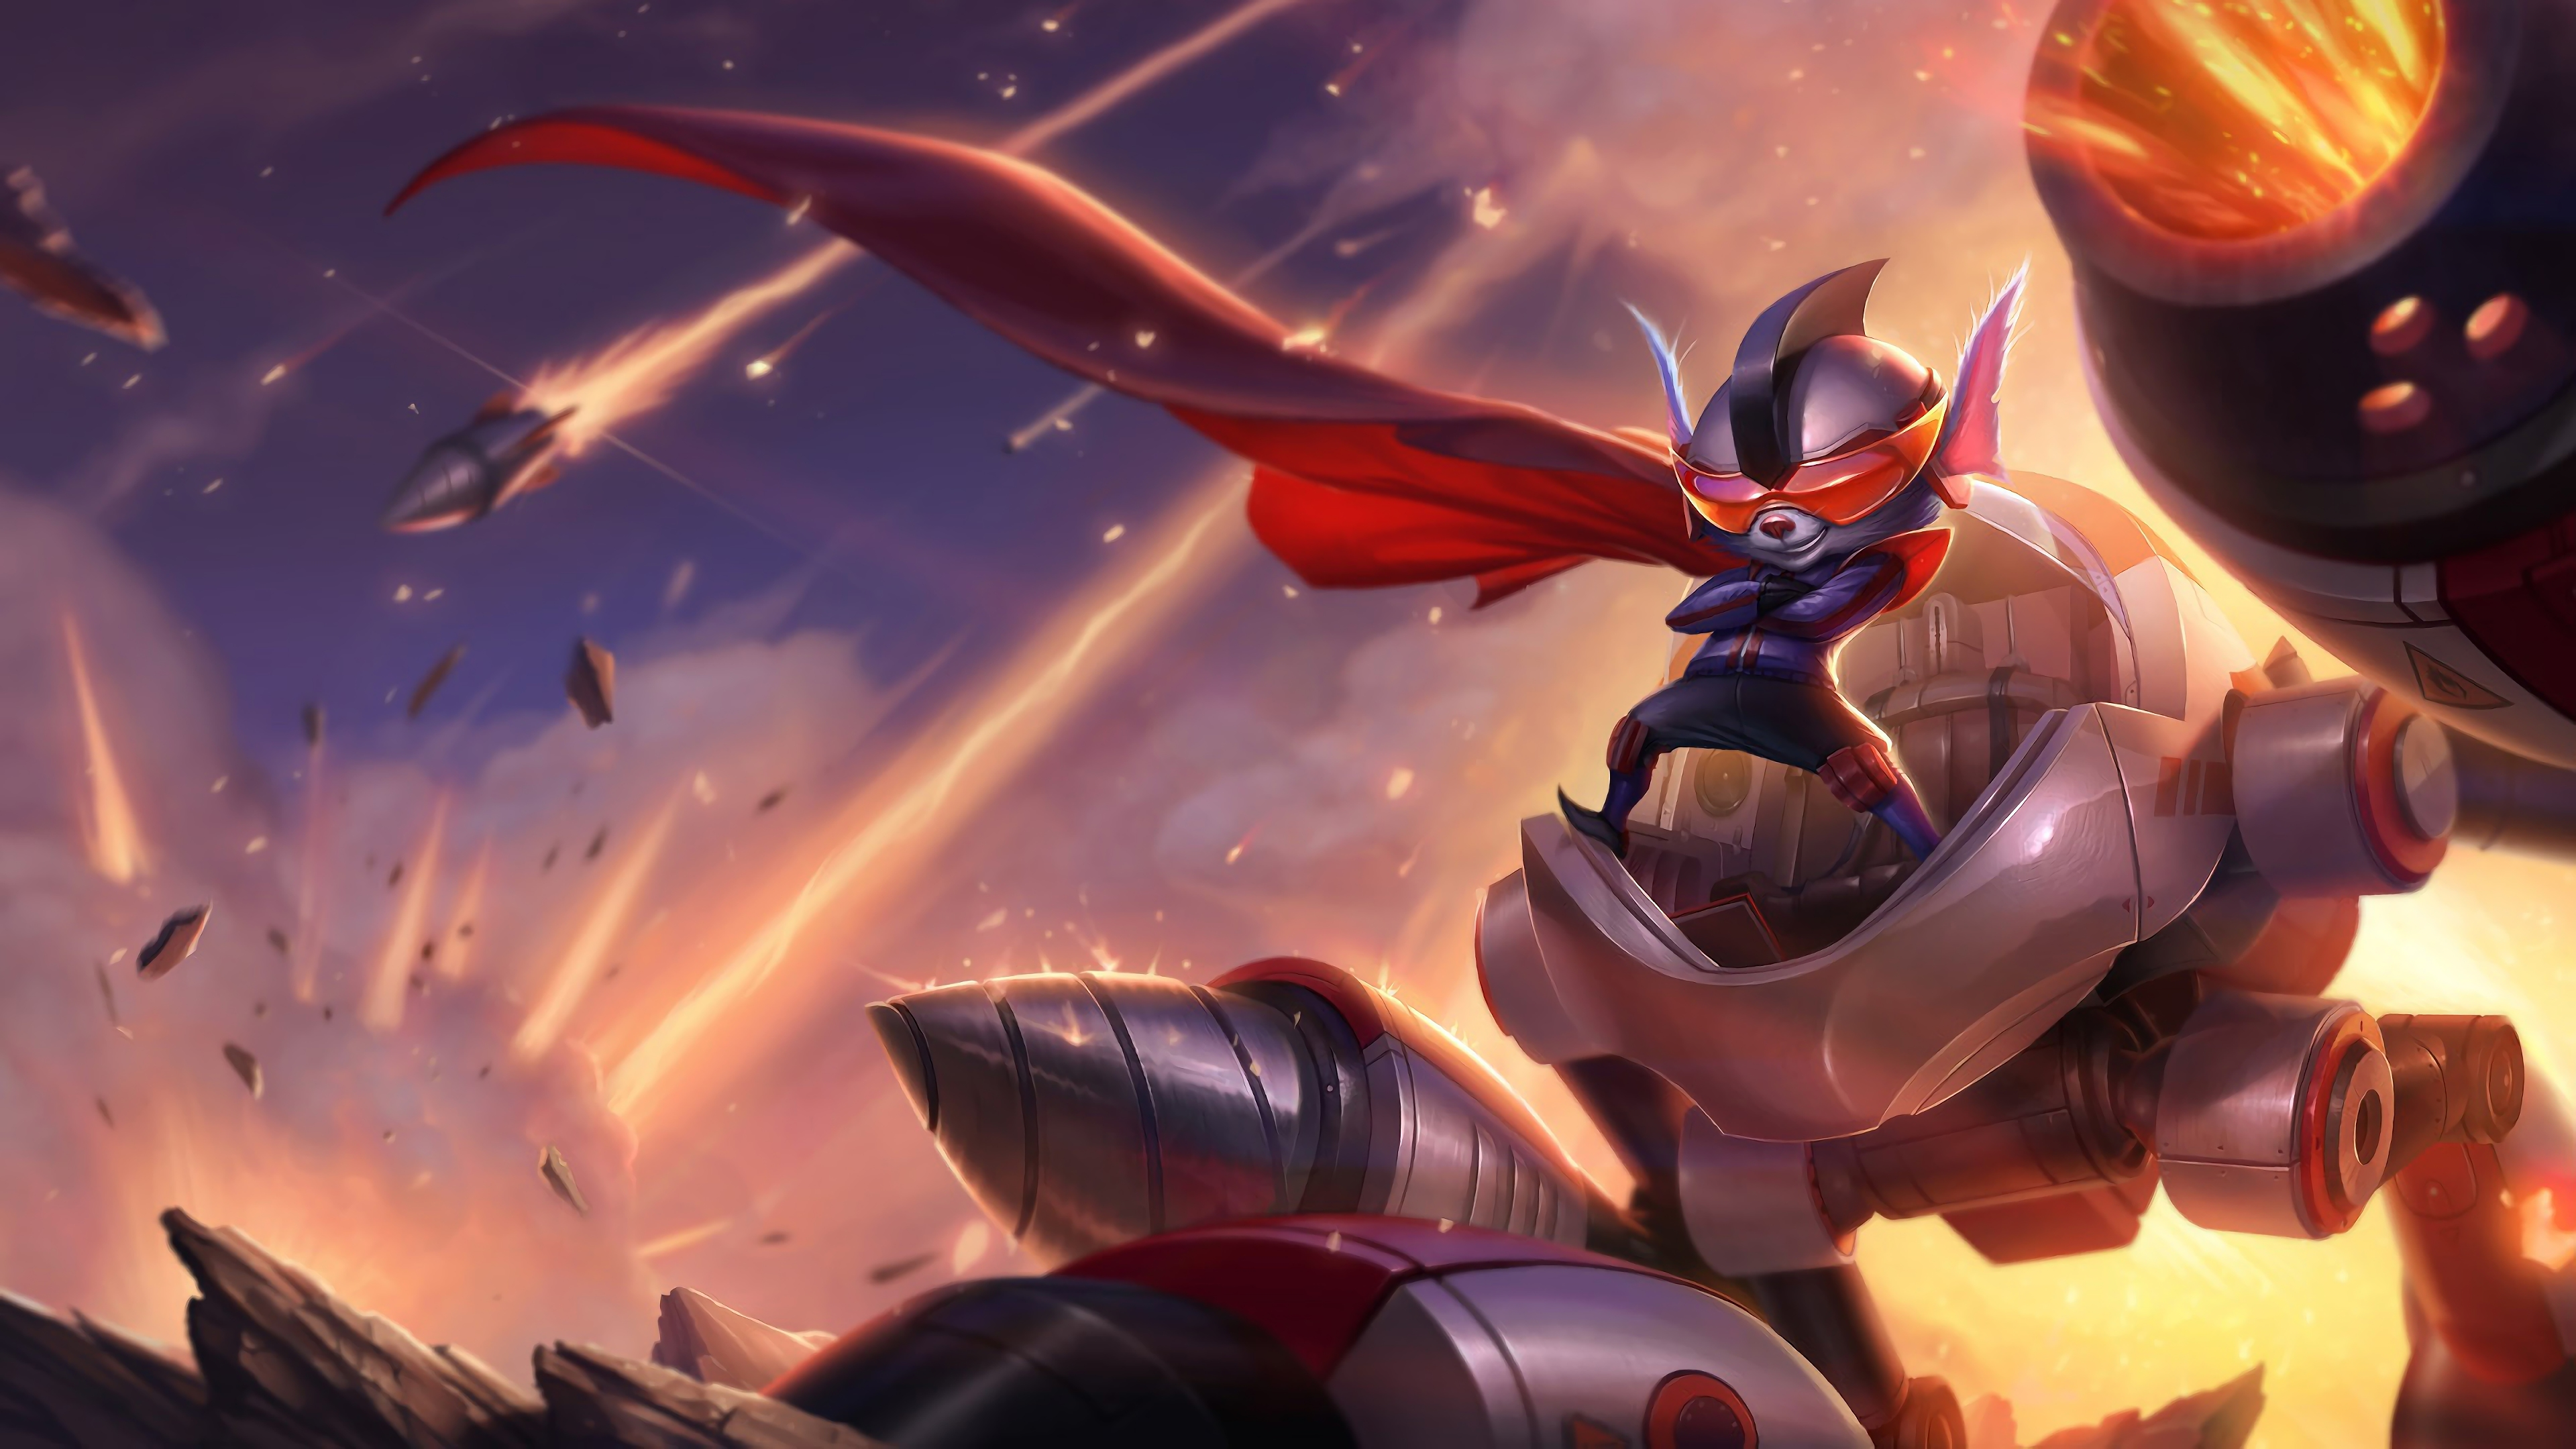 super galaxy rumble lol splash art league of legends 1574099240 - Super Galaxy Rumble LoL Splash Art League of Legends - Rumble, league of legends